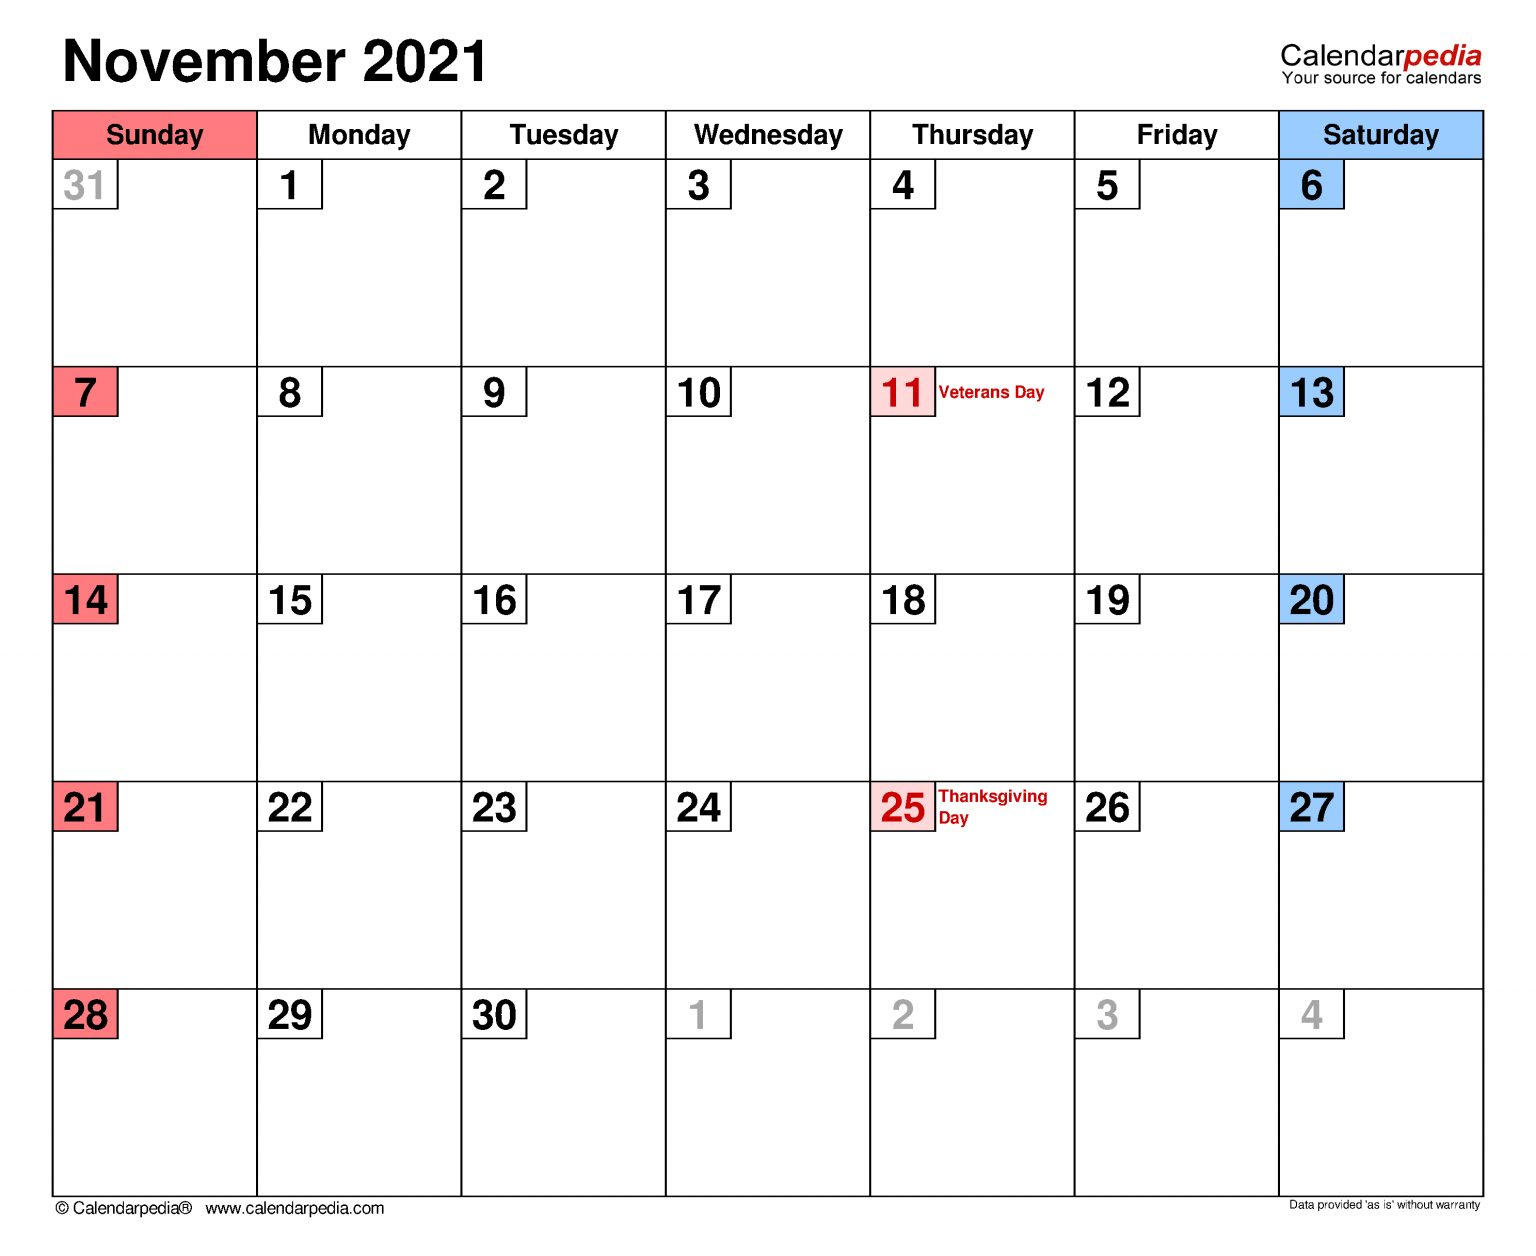 November 2021 Calendar Templates For Word Excel And Pdf